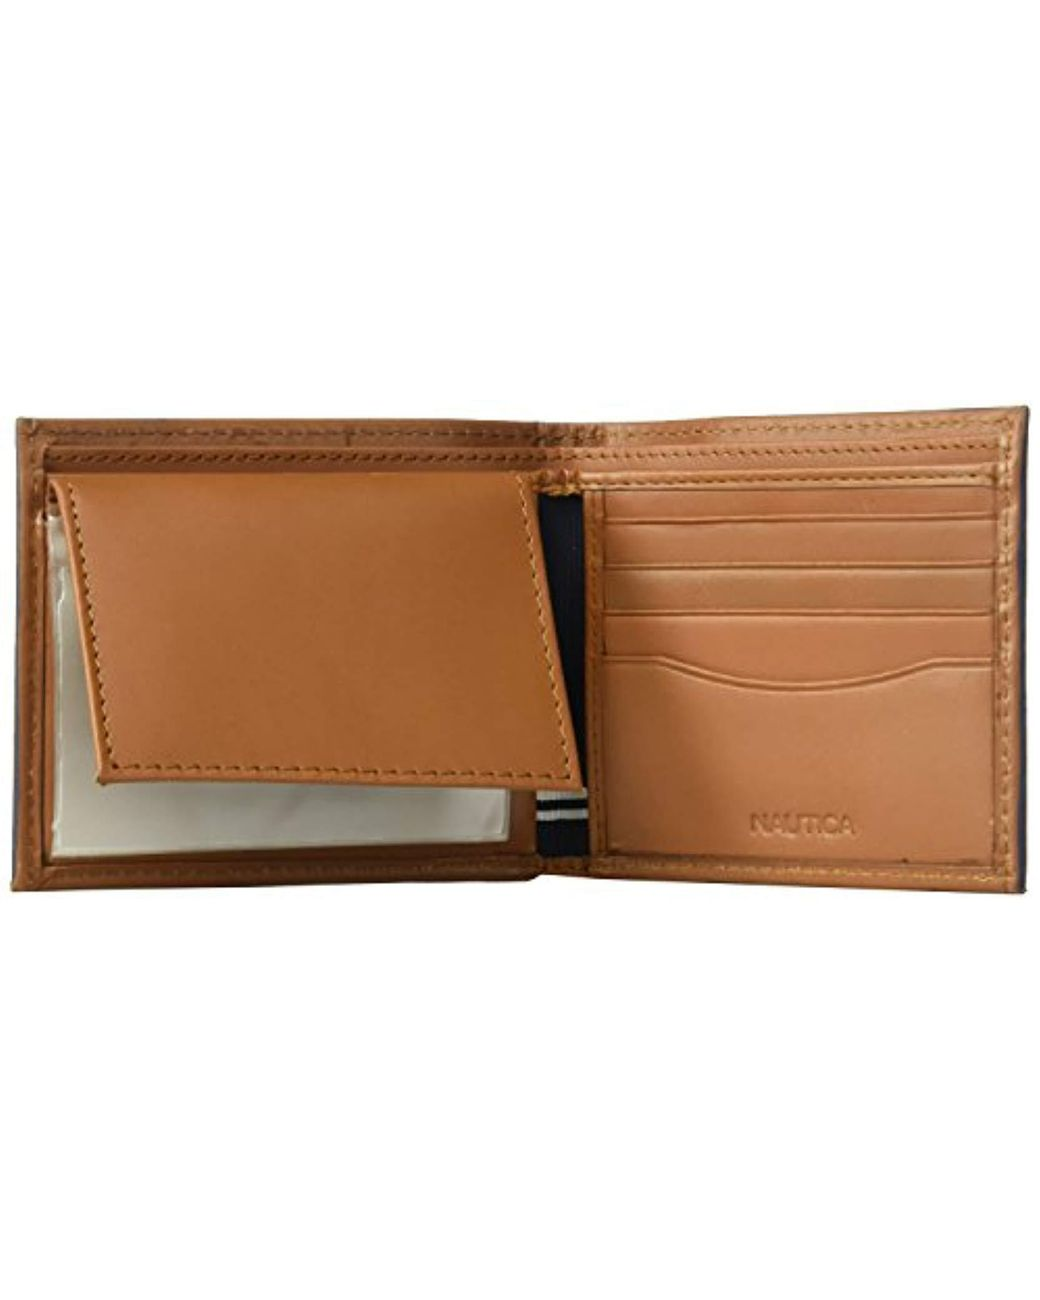 New Nautica Leather Billfold Coin Pocket Men/'s Black RFID Secure Wallet